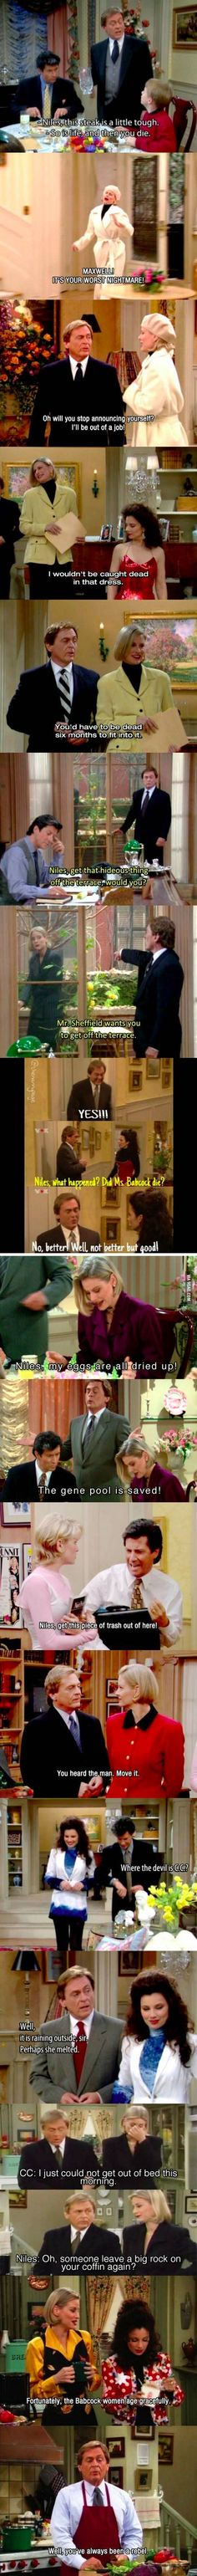 Love Niles so much in The Nanny. Good old time ;)